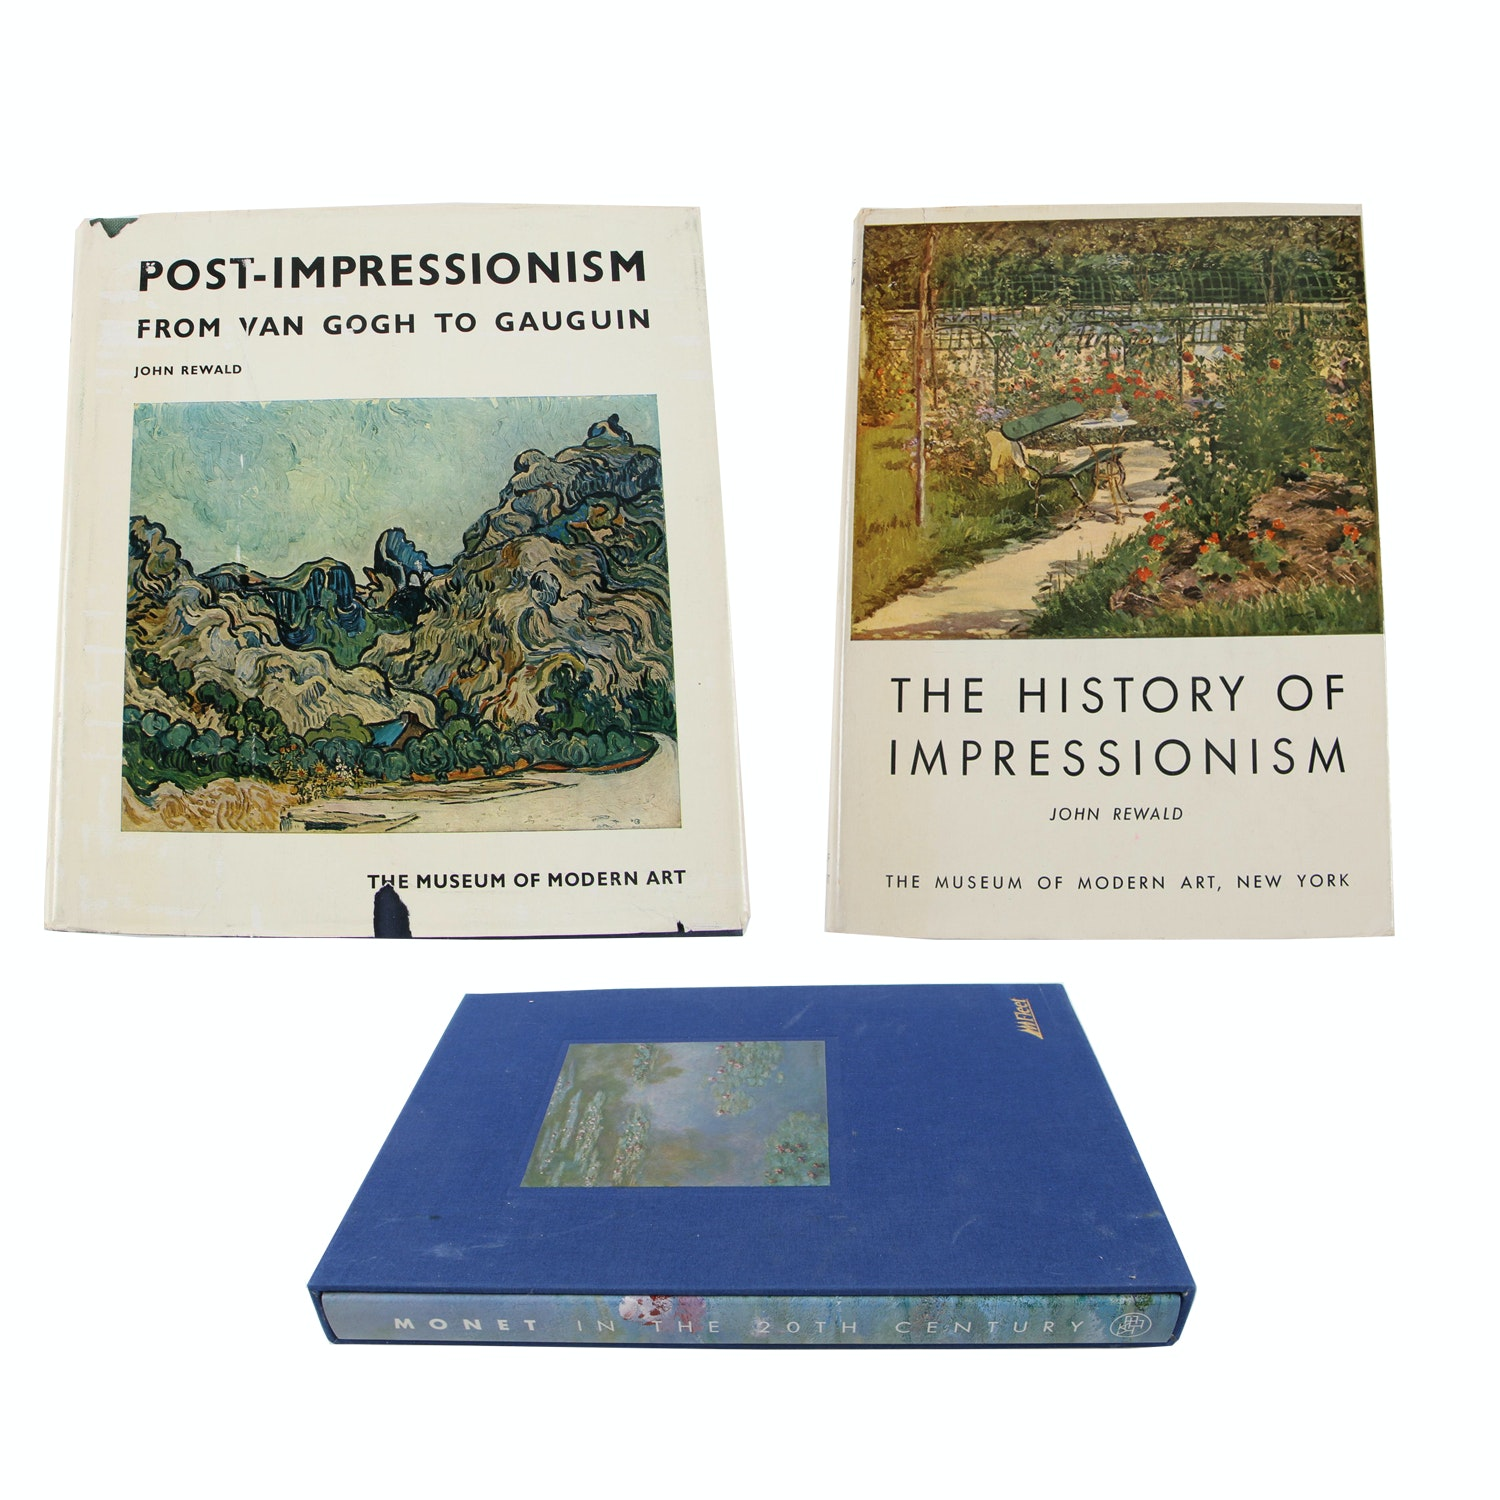 Art Books on Impressionism and Post-Impressionism featuring Claude Monet